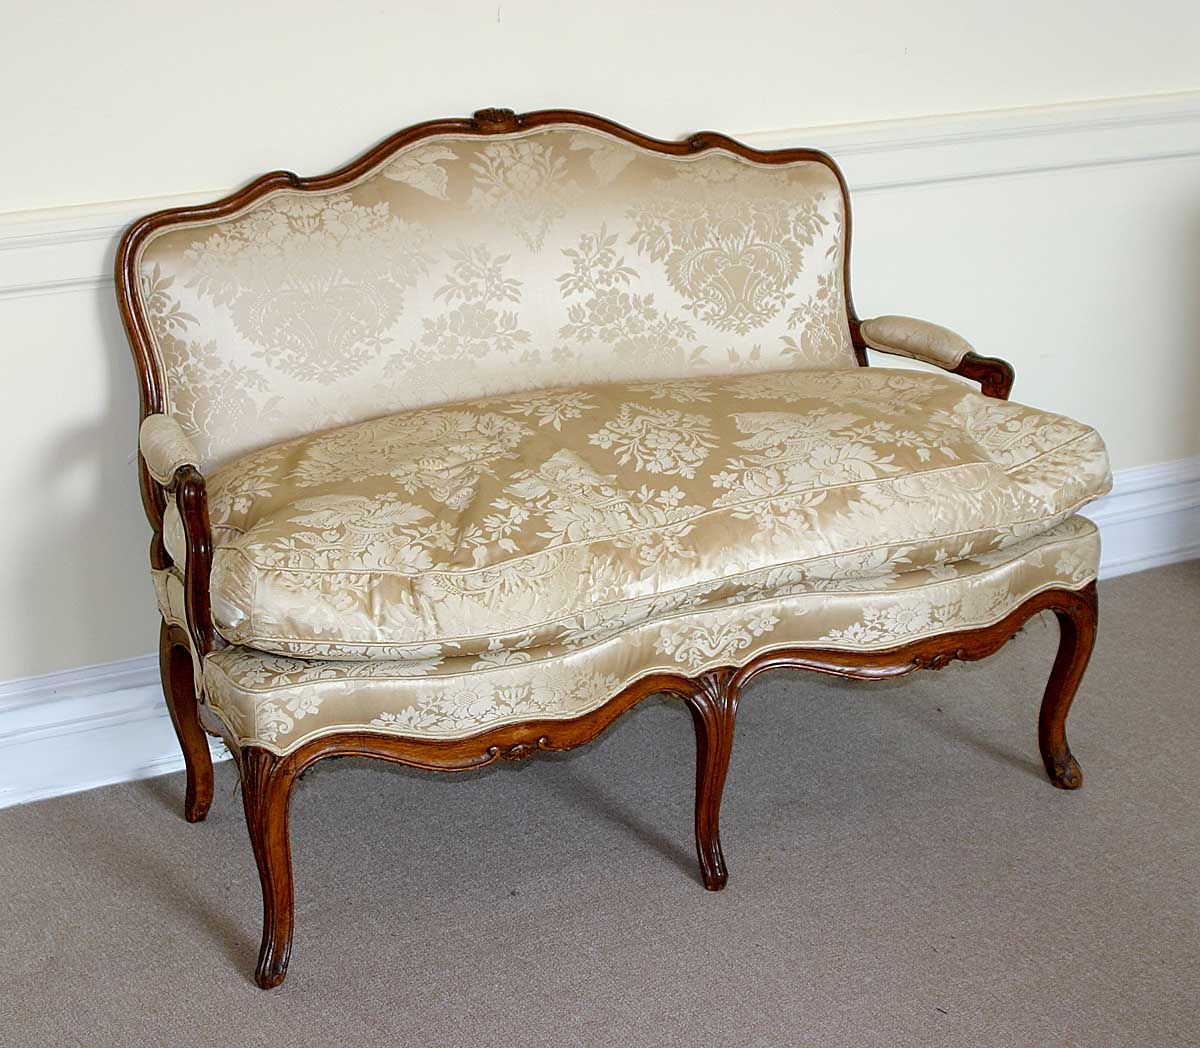 Louis xv period canap for sale classifieds for Canape insurance